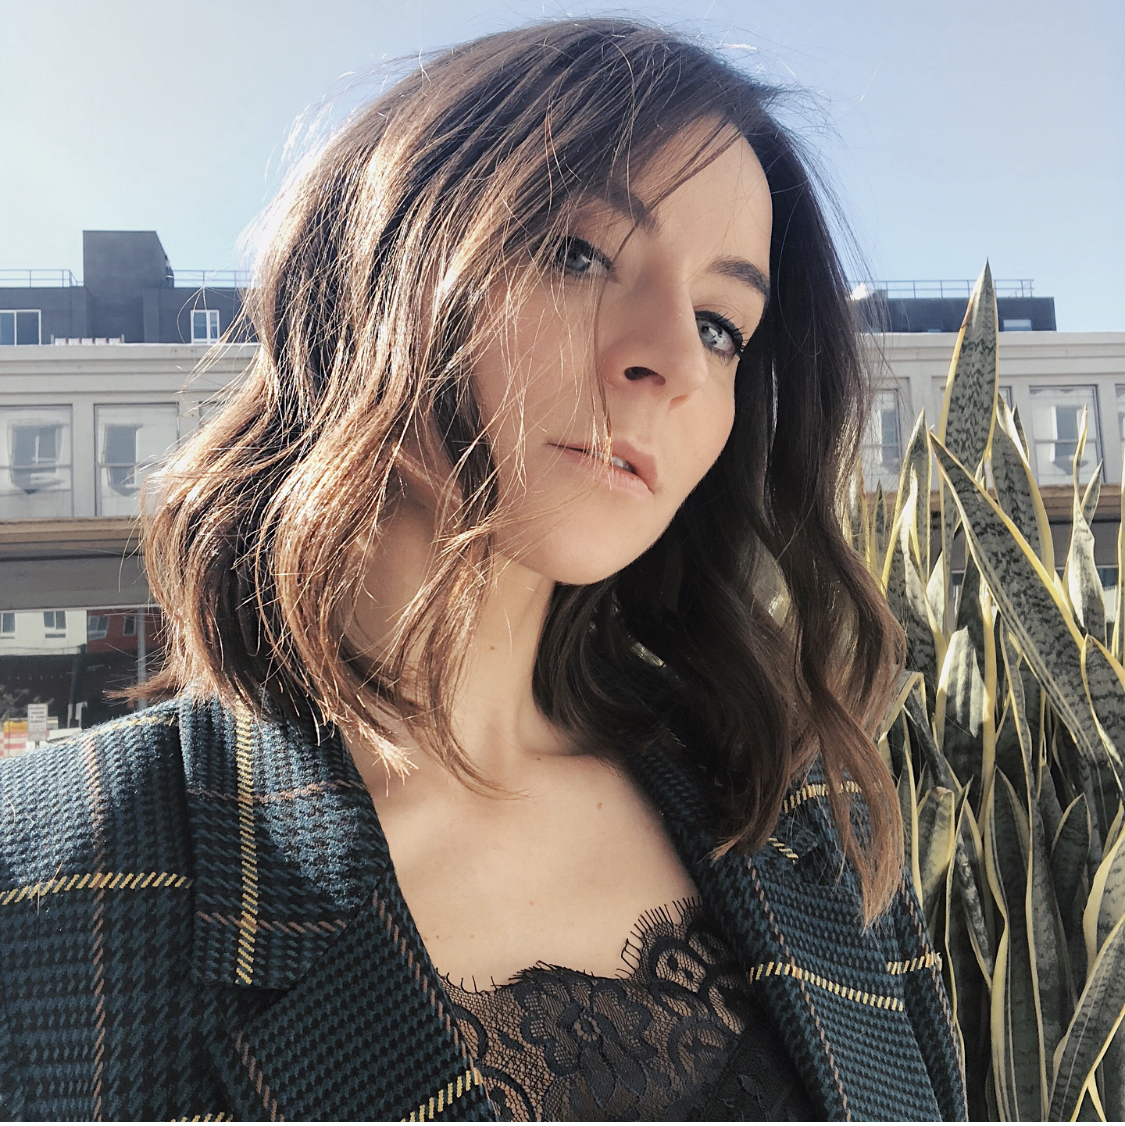 Melrose Place A French Girls Guide To Los Angeles Julia Comil French fashion blogger in Los Angeles